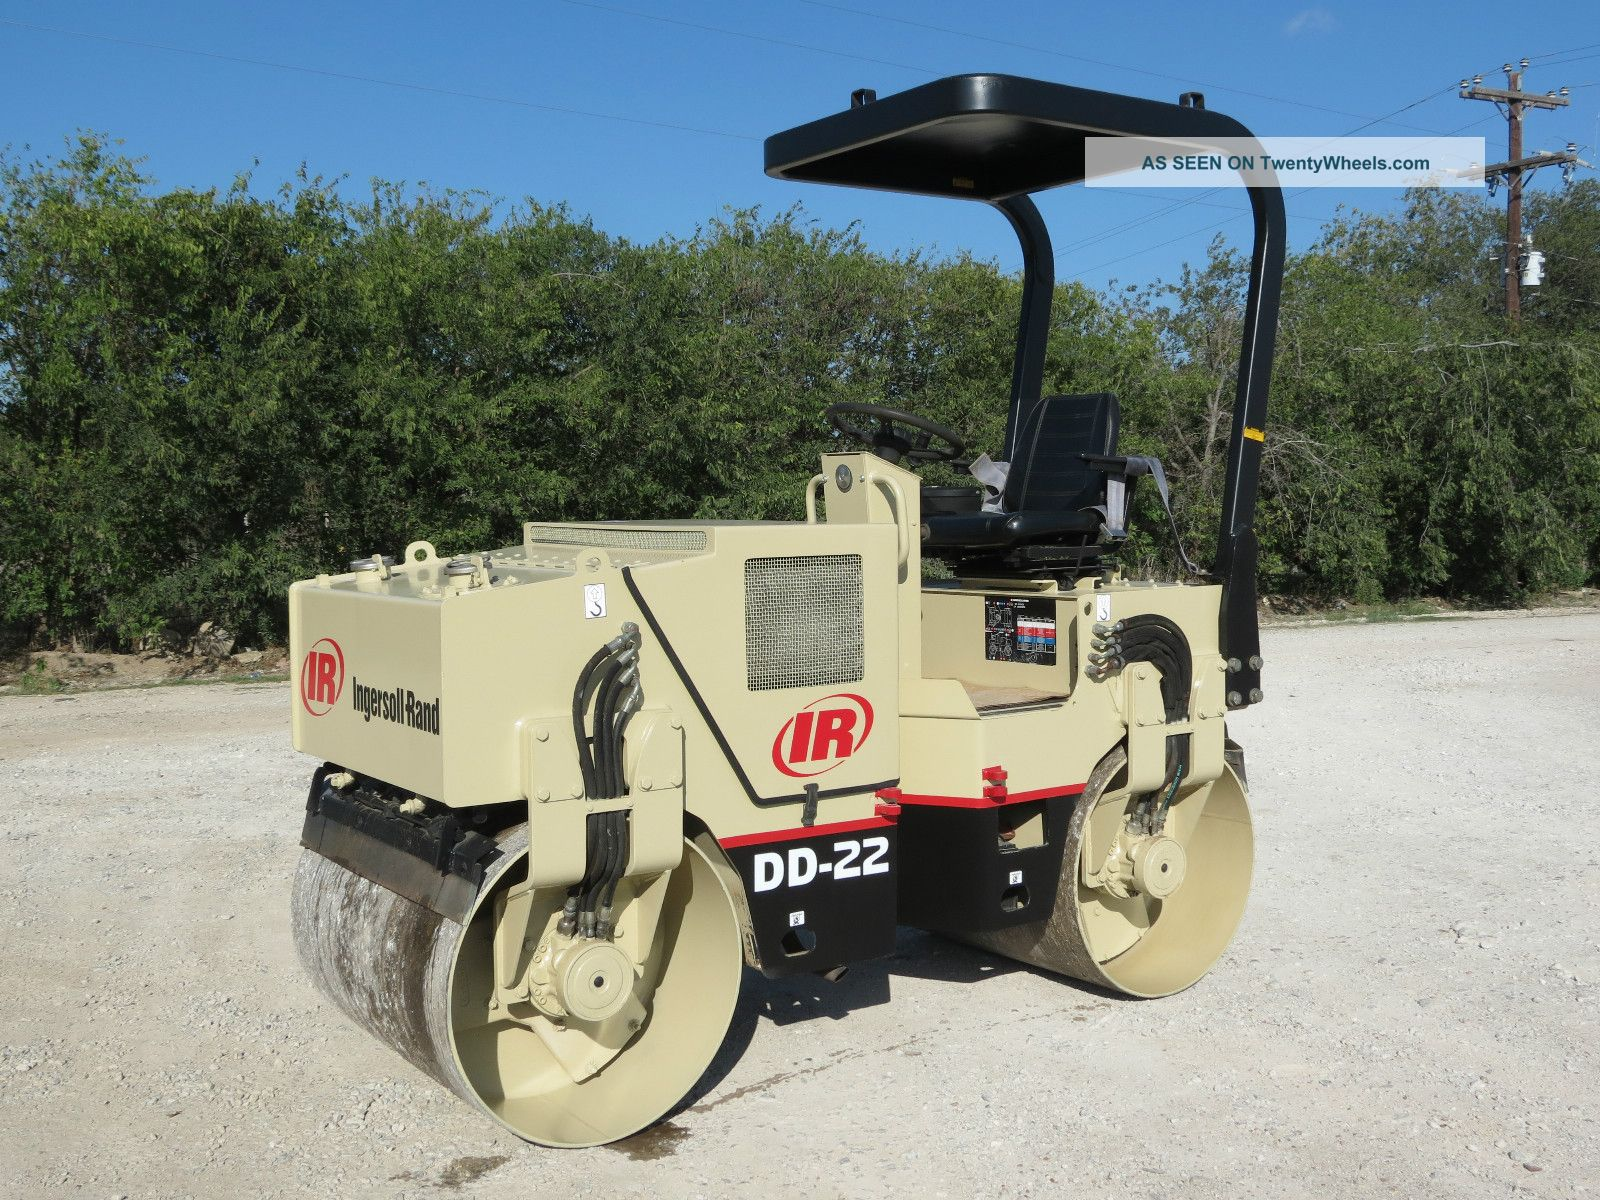 Ingersoll Rand Dd 22 Compactor Roller Vibratory Dual Drum Diesel Deutz Dfw Tx Compactors & Rollers - Riding photo